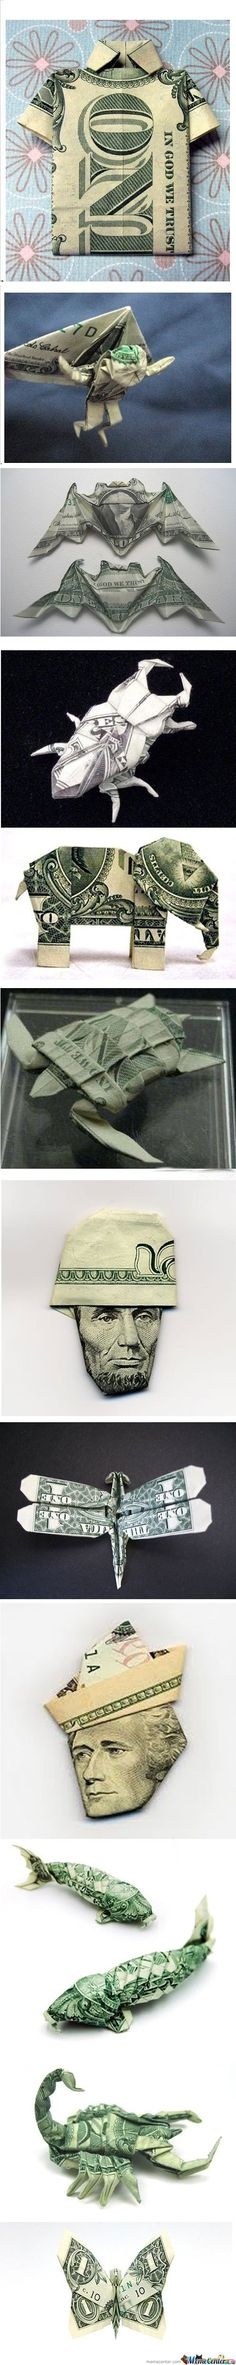 money origami - very cool!